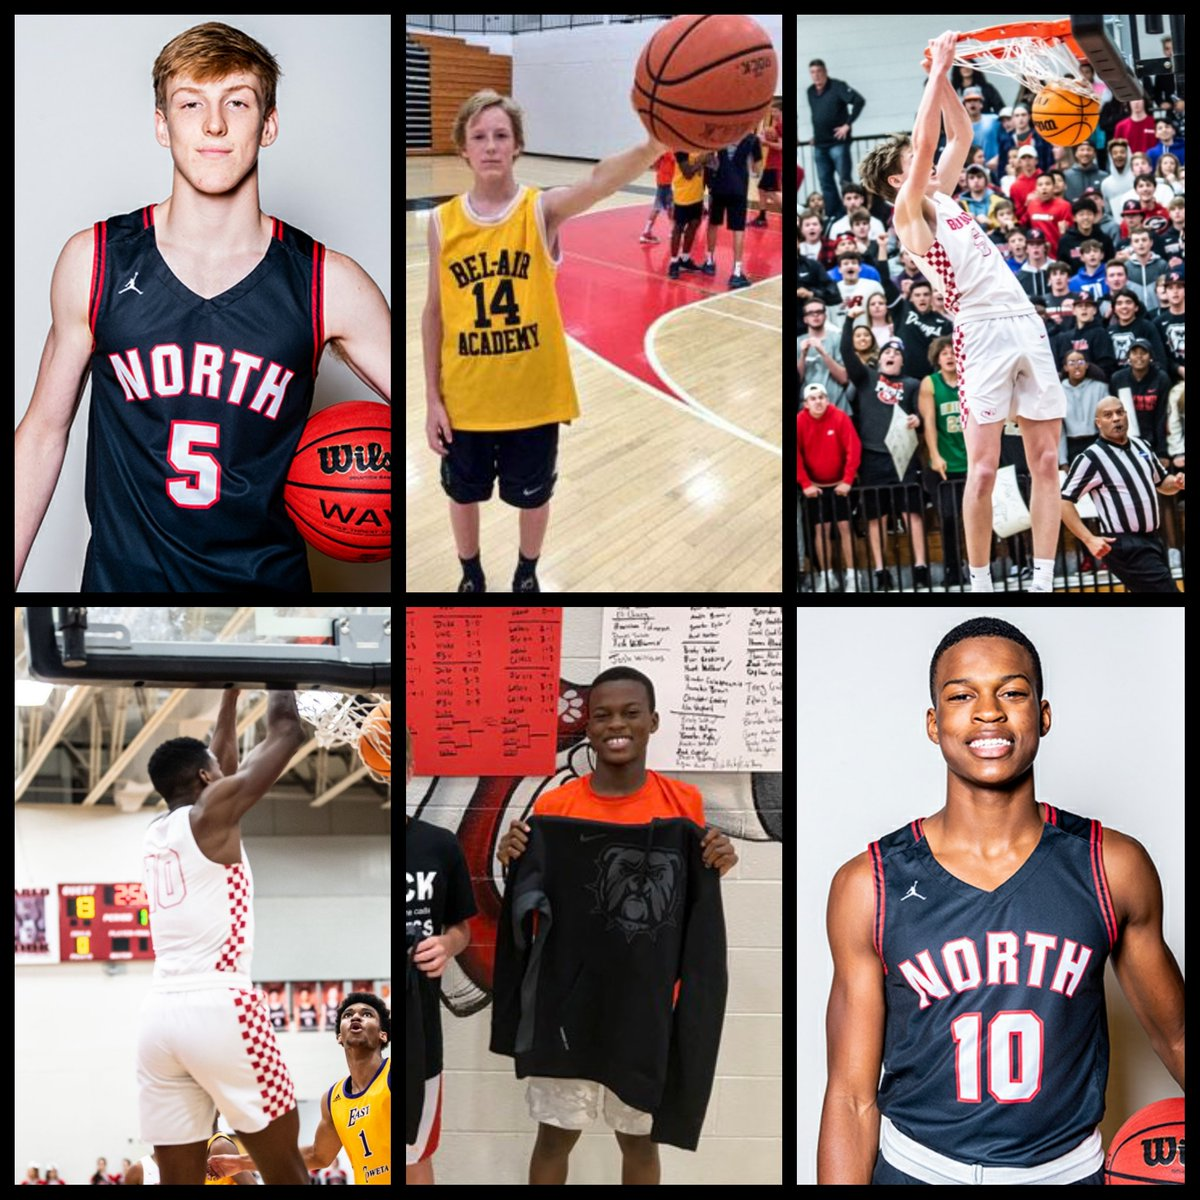 @hoopseen just updated their GA rankings and we recognized a few names:  # 39 in 2021 is @_brendanrgsbee_   # 3 in 2022 is @godfrey_rj   #NGBrotherhood https://t.co/xK9JA6OzBO